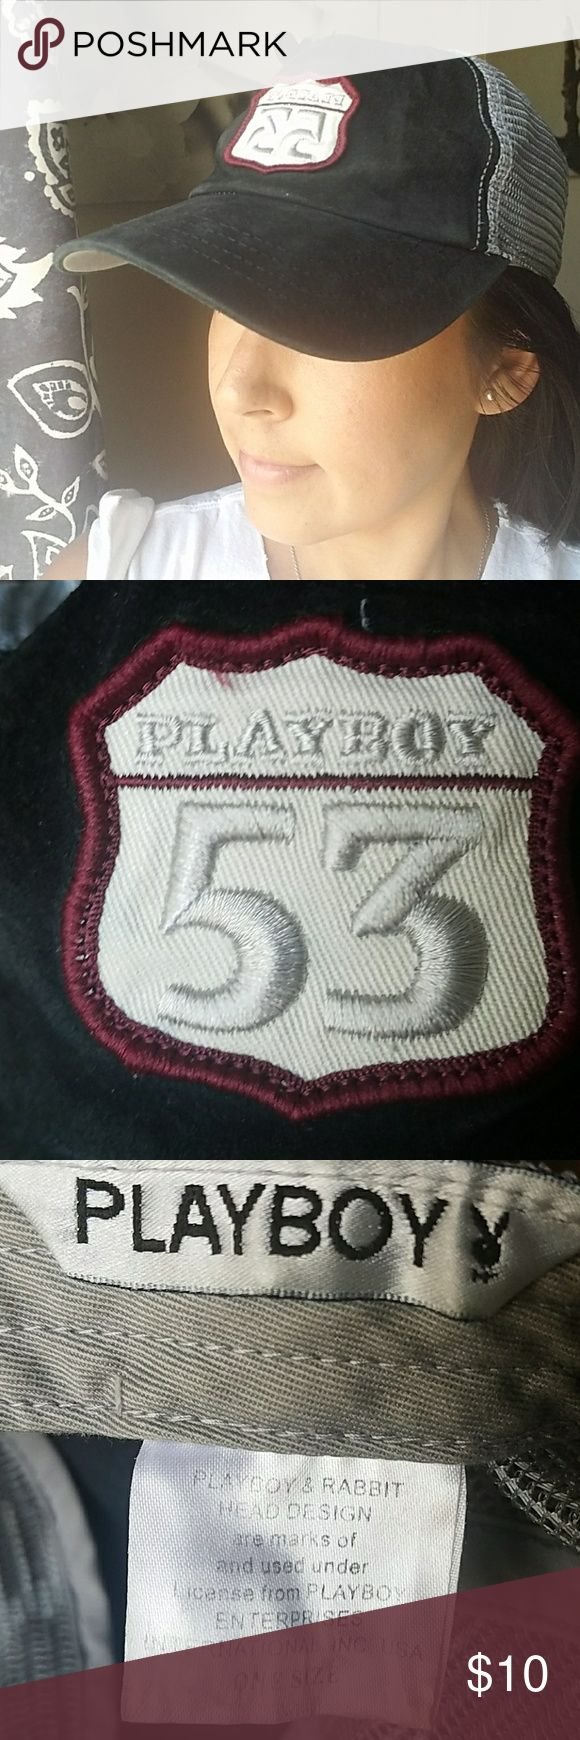 Playboy Trucker Hat Black leather and gray trucker style hat. Good used condition.  Looks great on men and women. Snap back. Hat is flexible in the netting area, not stiff. Playboy Accessories Hats